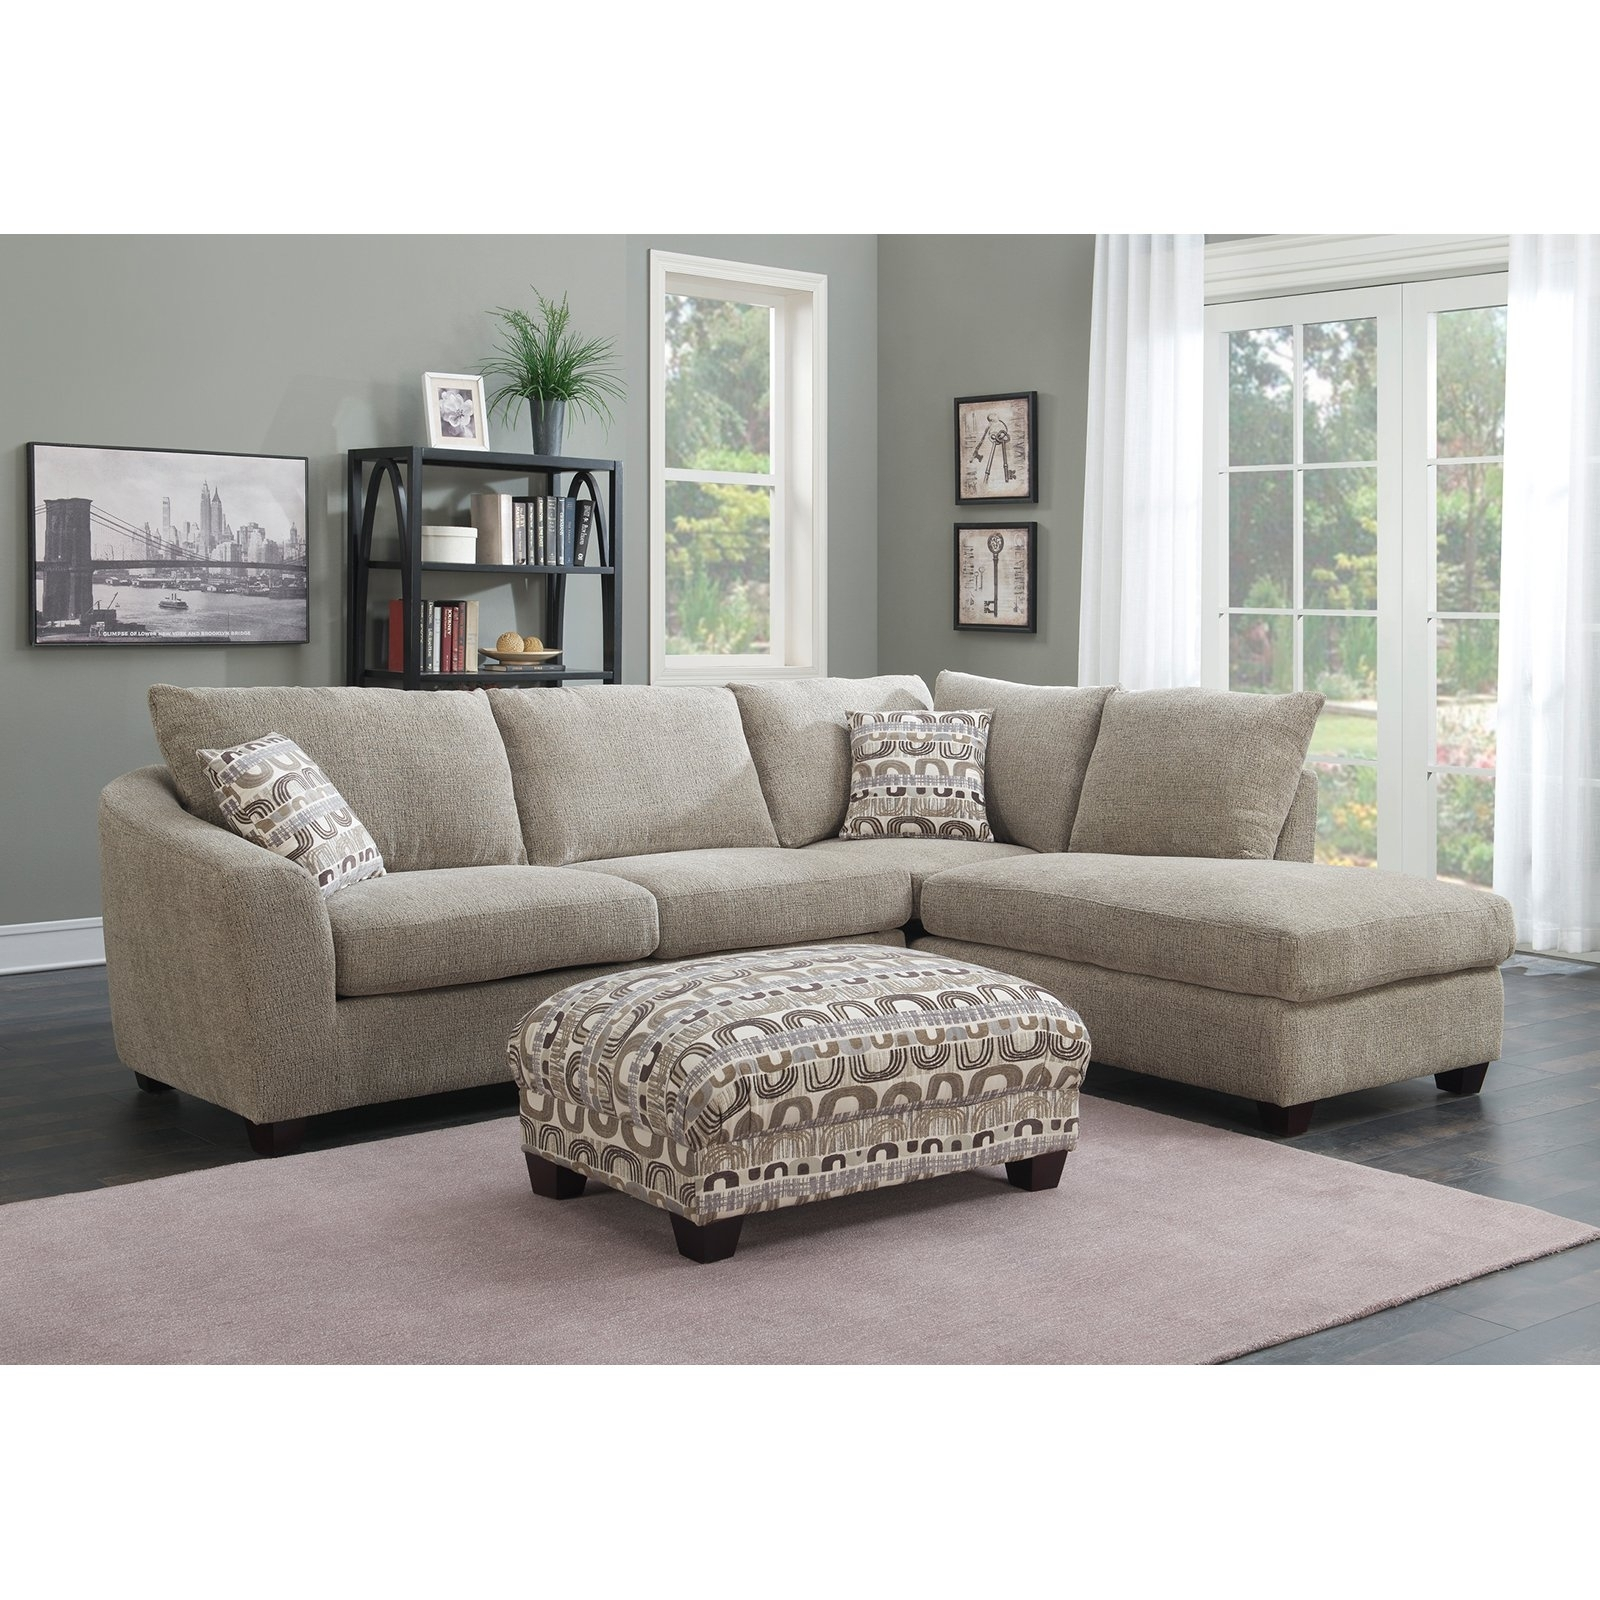 Emerald Home Urbana Piece Sectional Sofa With Chaise Couch Double within Delano 2 Piece Sectionals With Laf Oversized Chaise (Image 17 of 30)